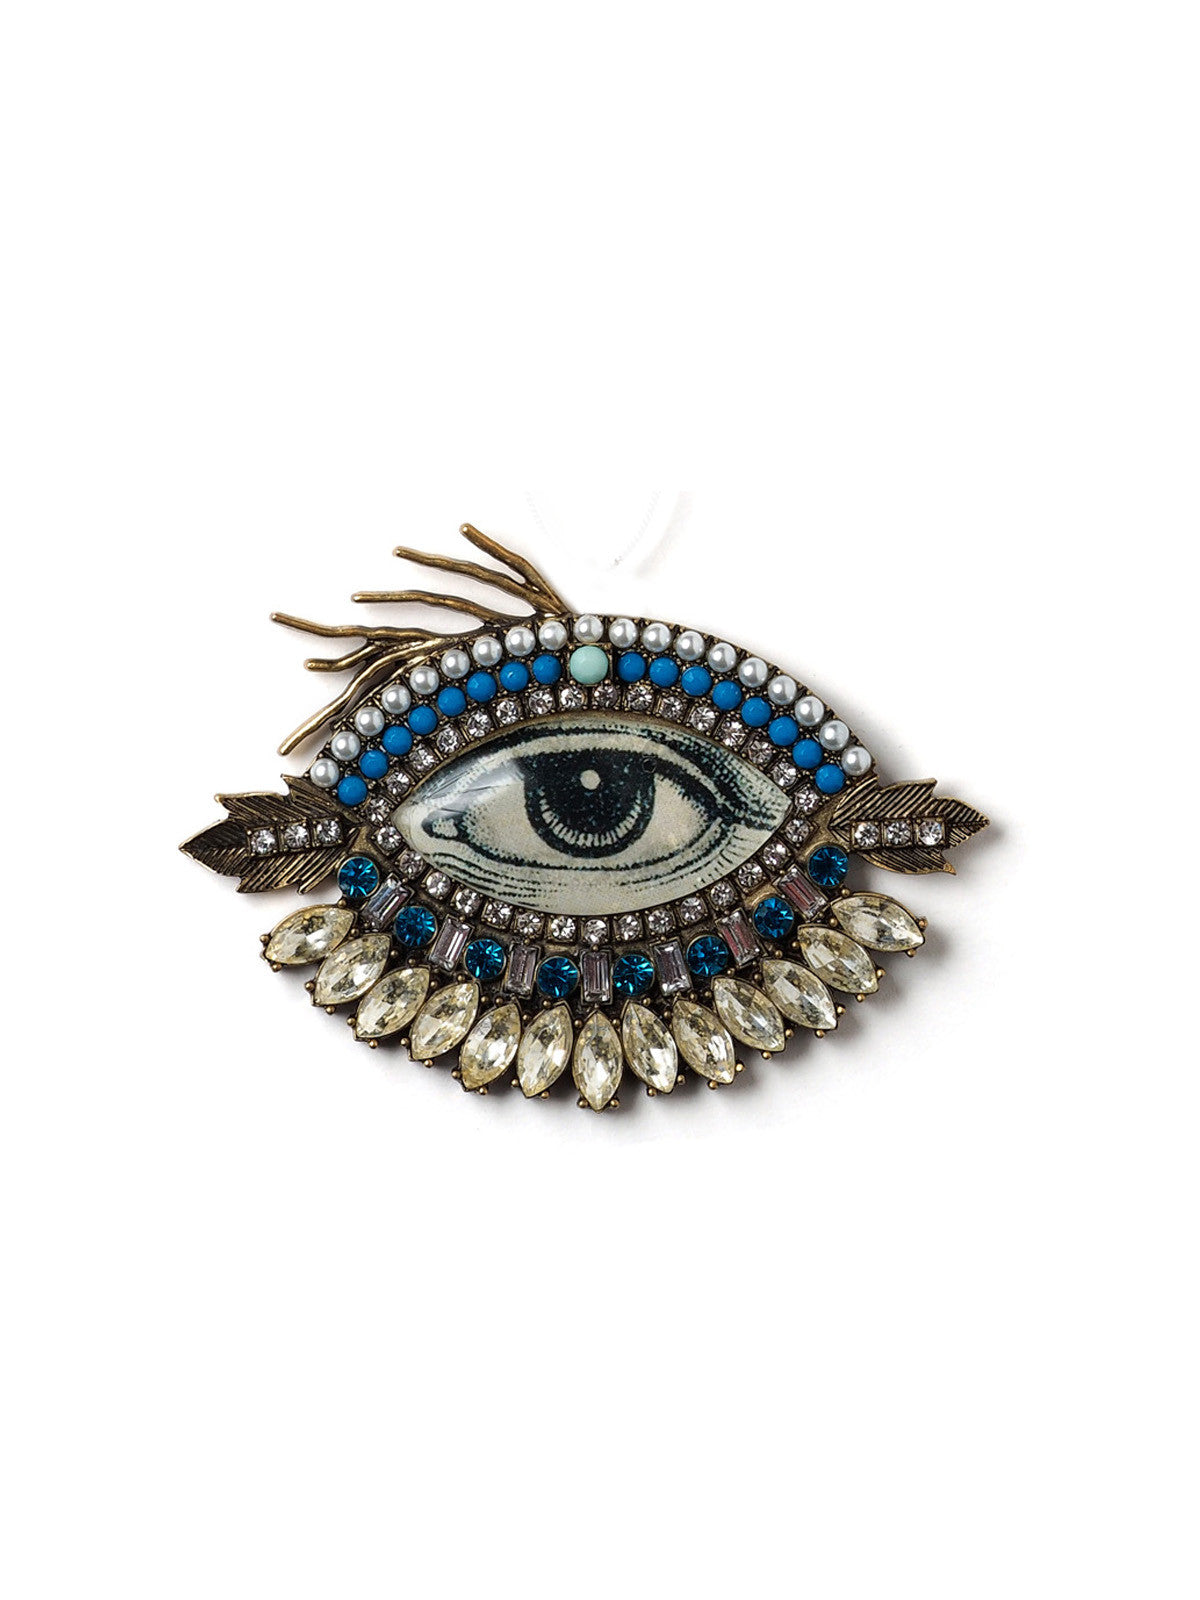 wilson pearl collections double eye collection adjustable ring eyes butler lips and brooch jewellery